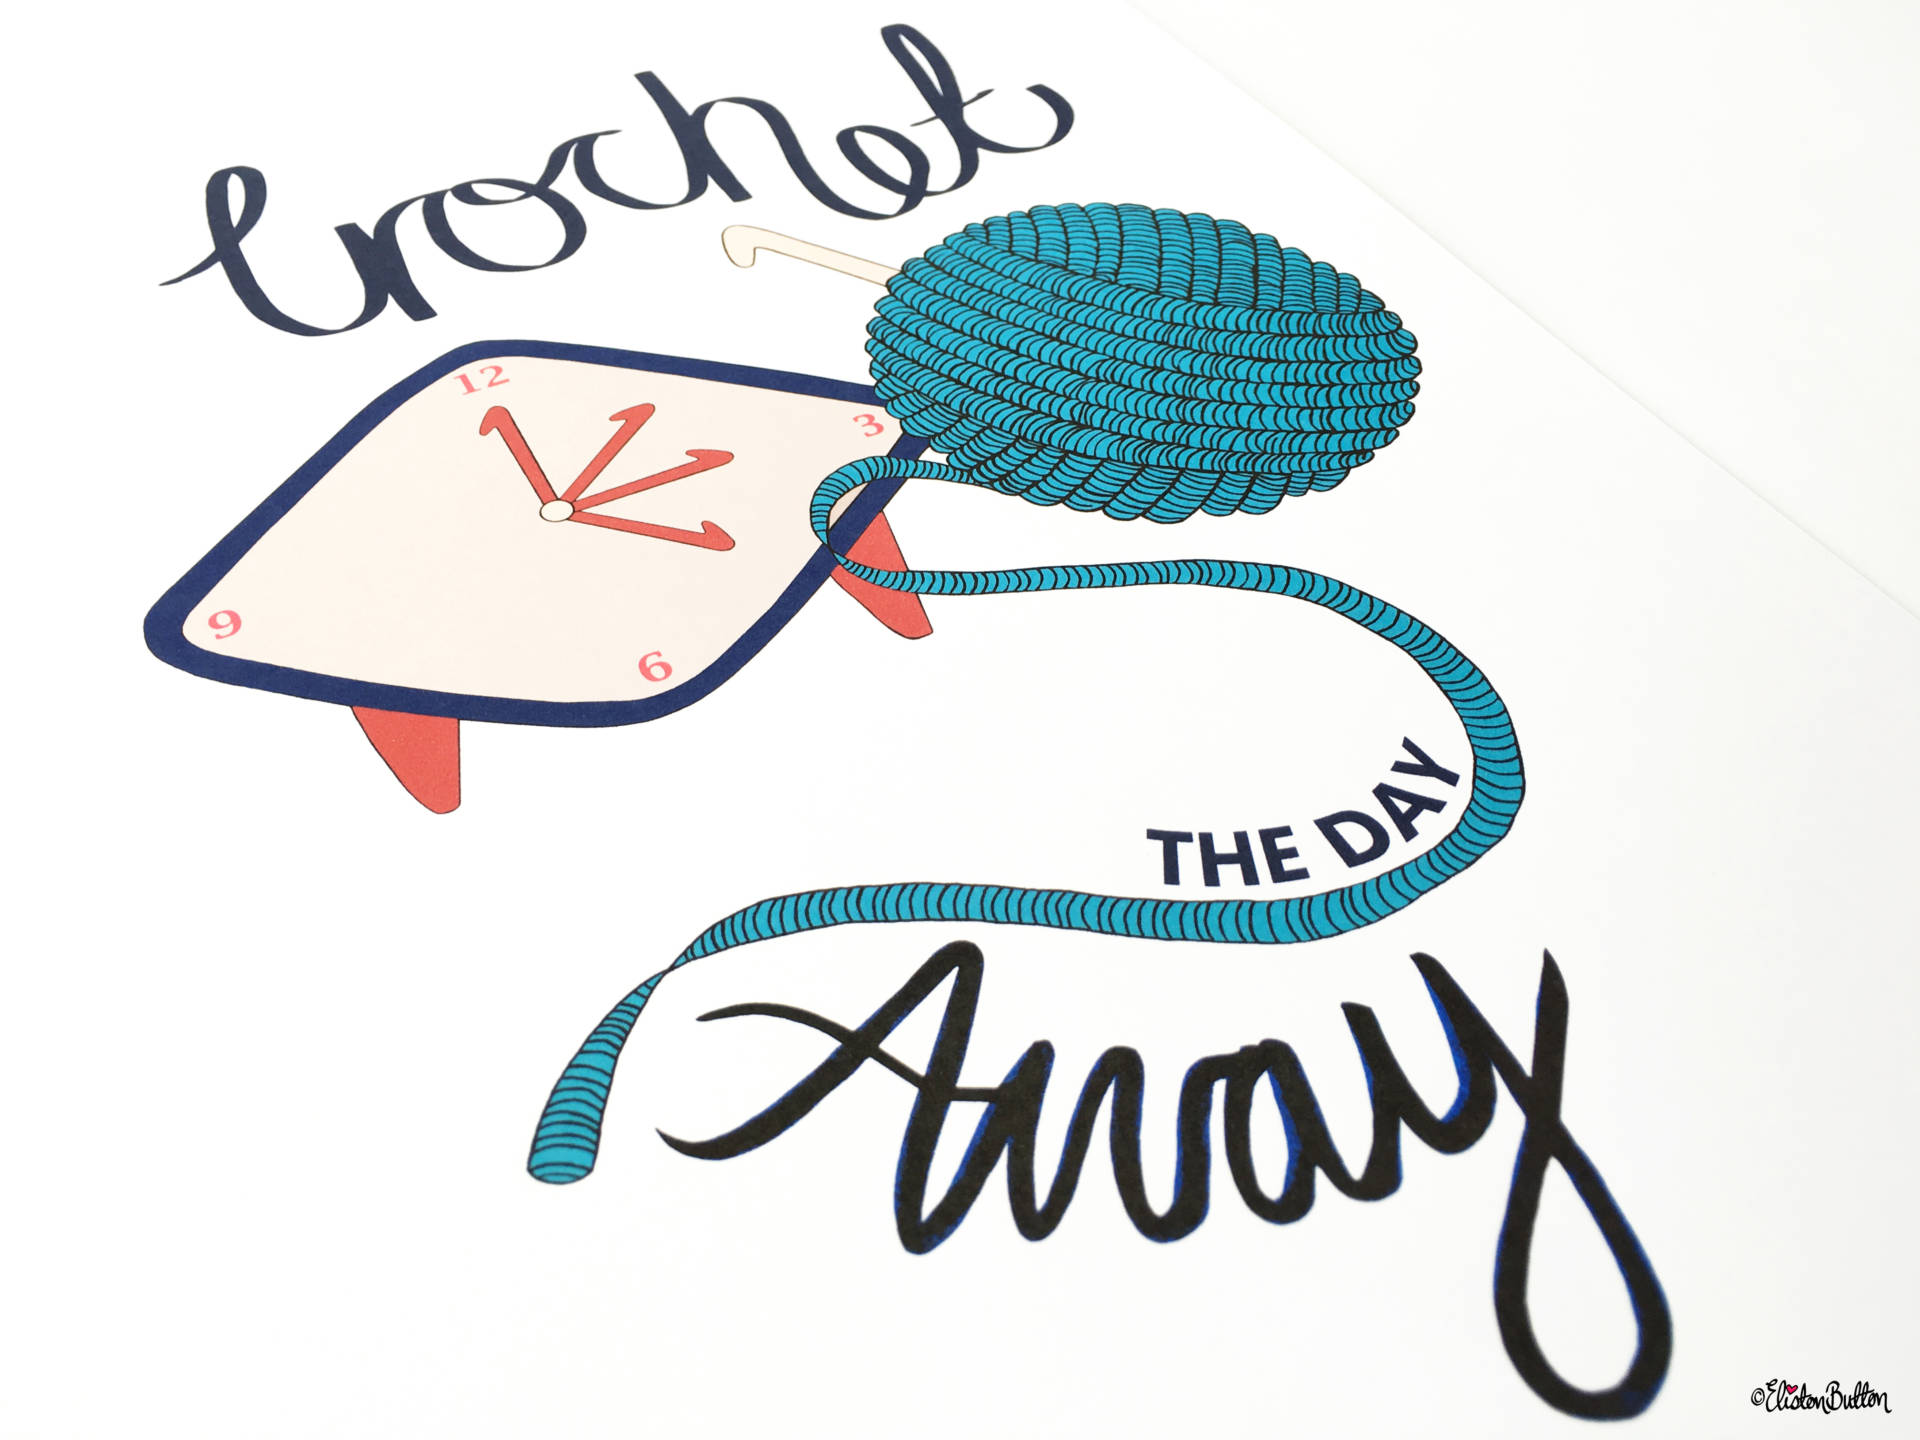 Crochet the Day Away Wall Art Print by Eliston Button with Illustration - Create 30 – No. 3 & 4 – Crochet Illustrated Quote Prints at www.elistonbutton.com - Eliston Button - That Crafty Kid – Art, Design, Craft & Adventure.